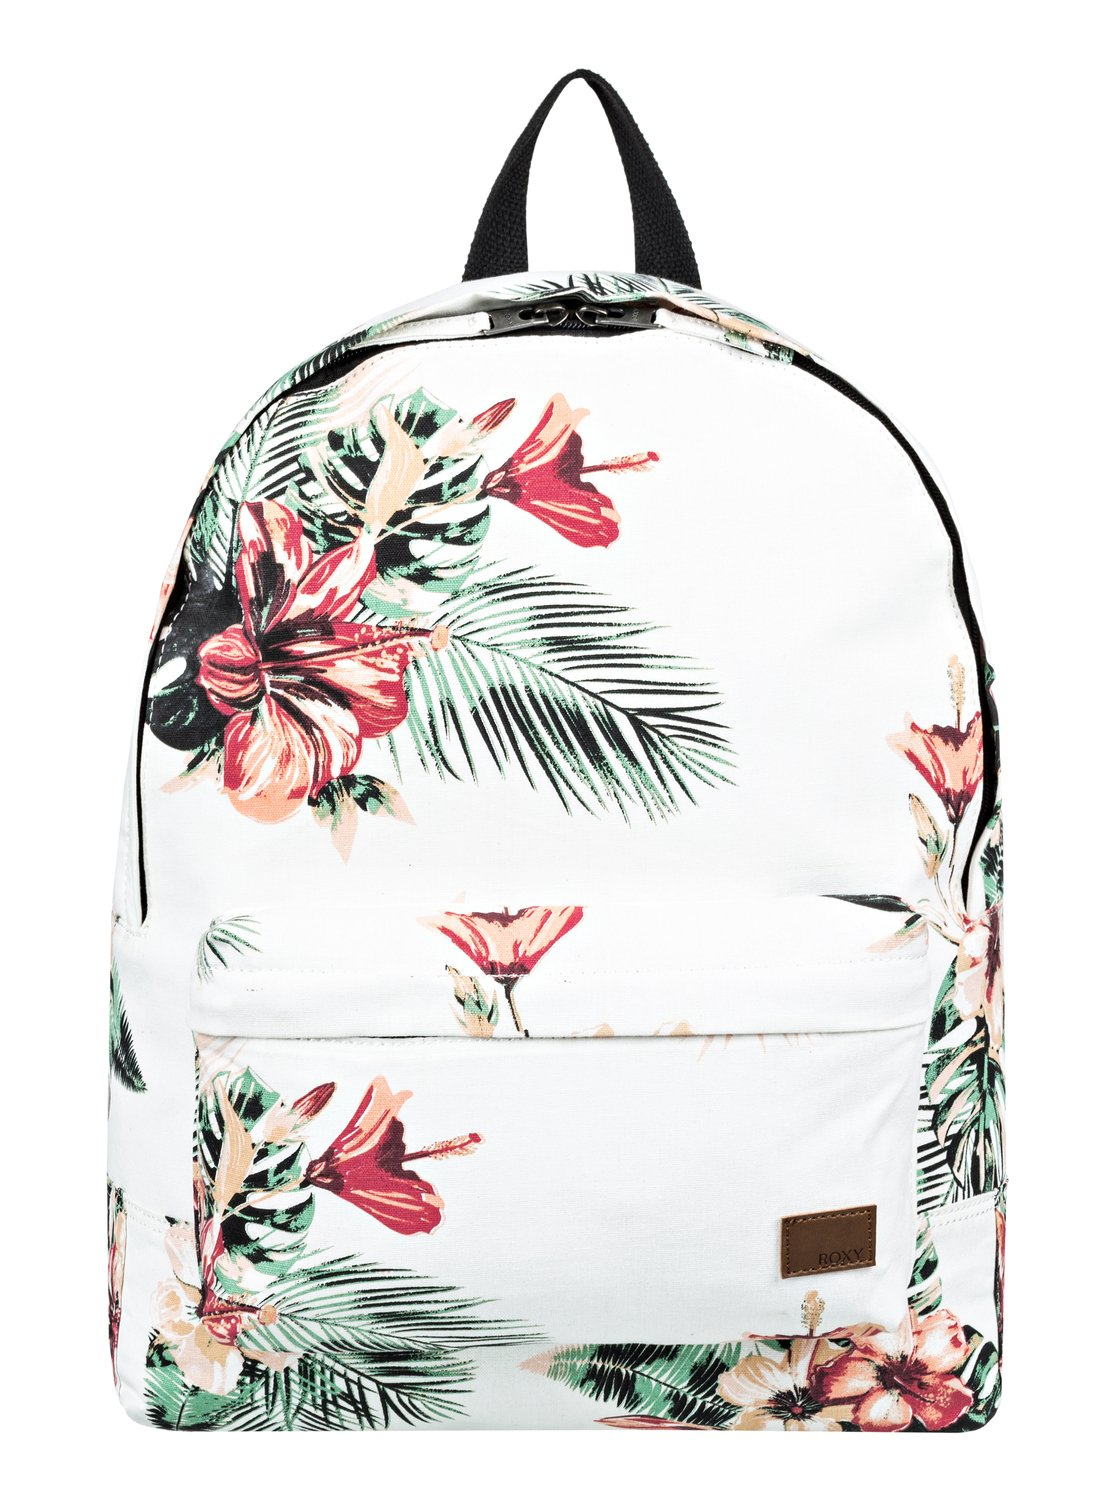 d1c0f93c386 Roxy™ Sugar Baby Canvas 16L - Small Backpack - Women - ONE SIZE - Multicolor